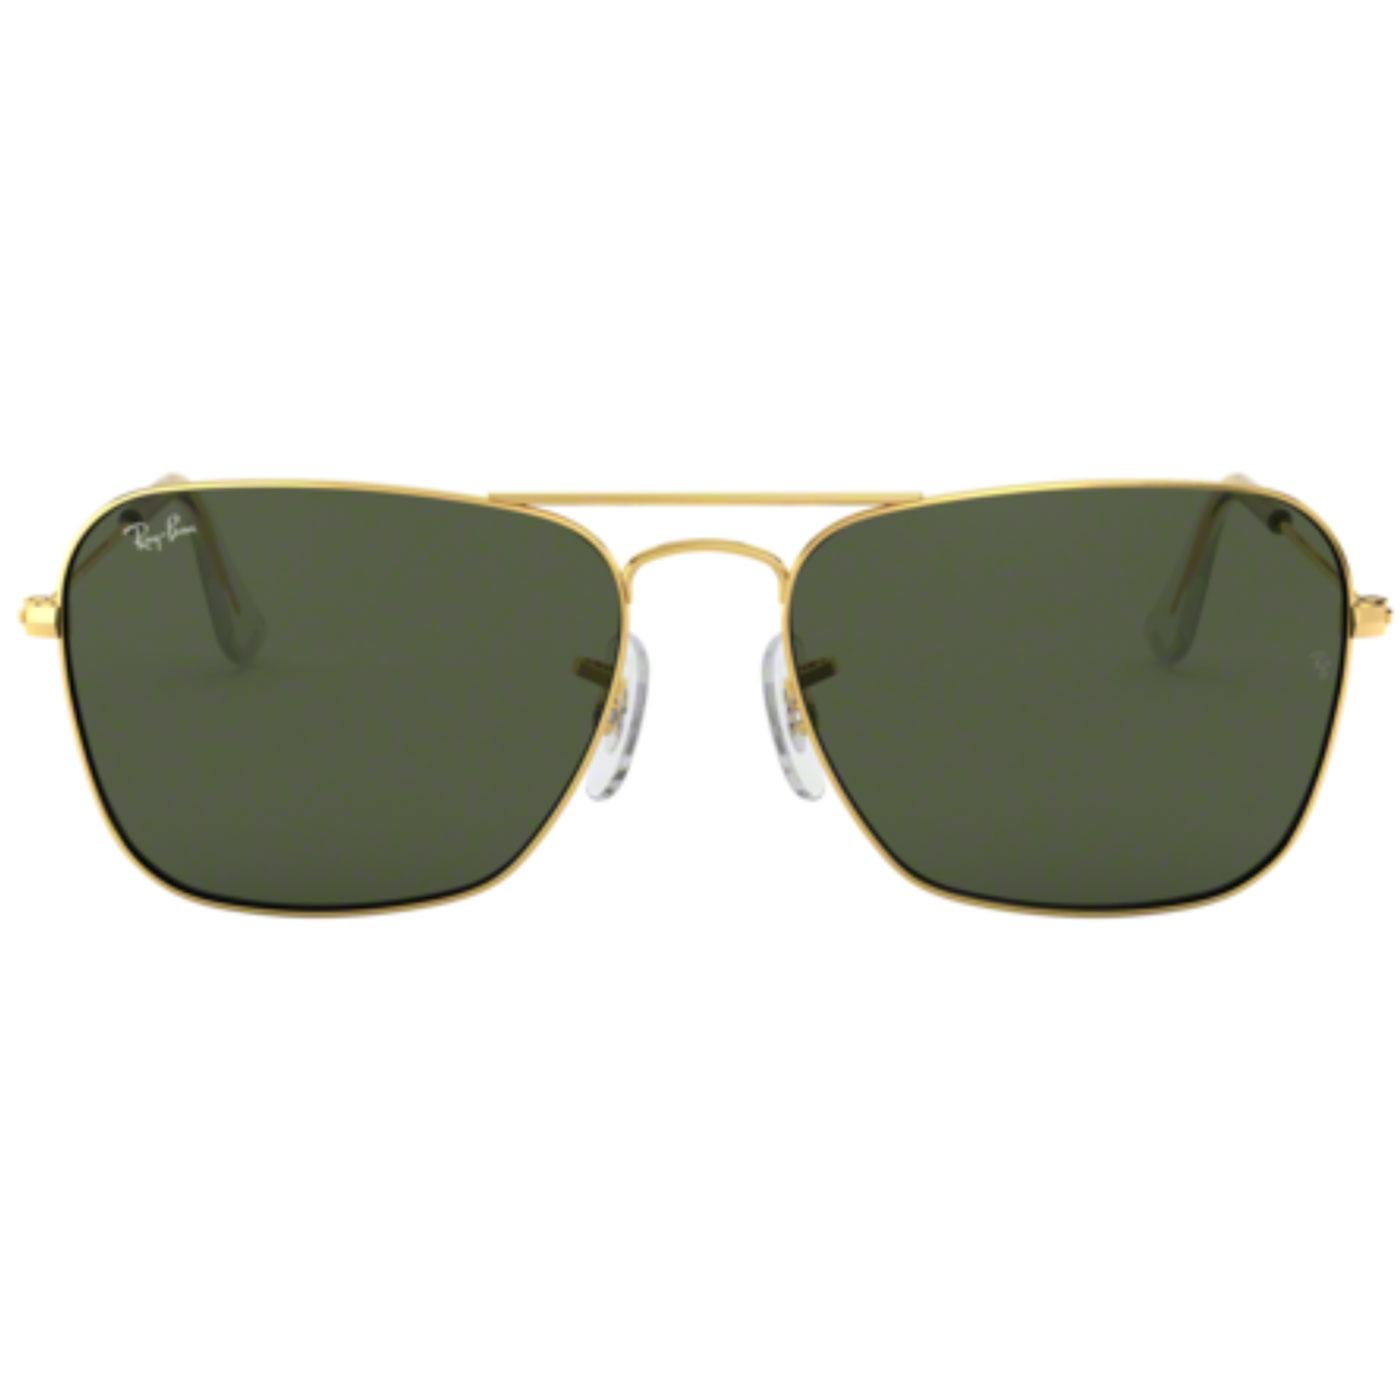 6ee8e966d RAY-BAN Caravan Retro 60s Mod Indie Sunglasses in Gold